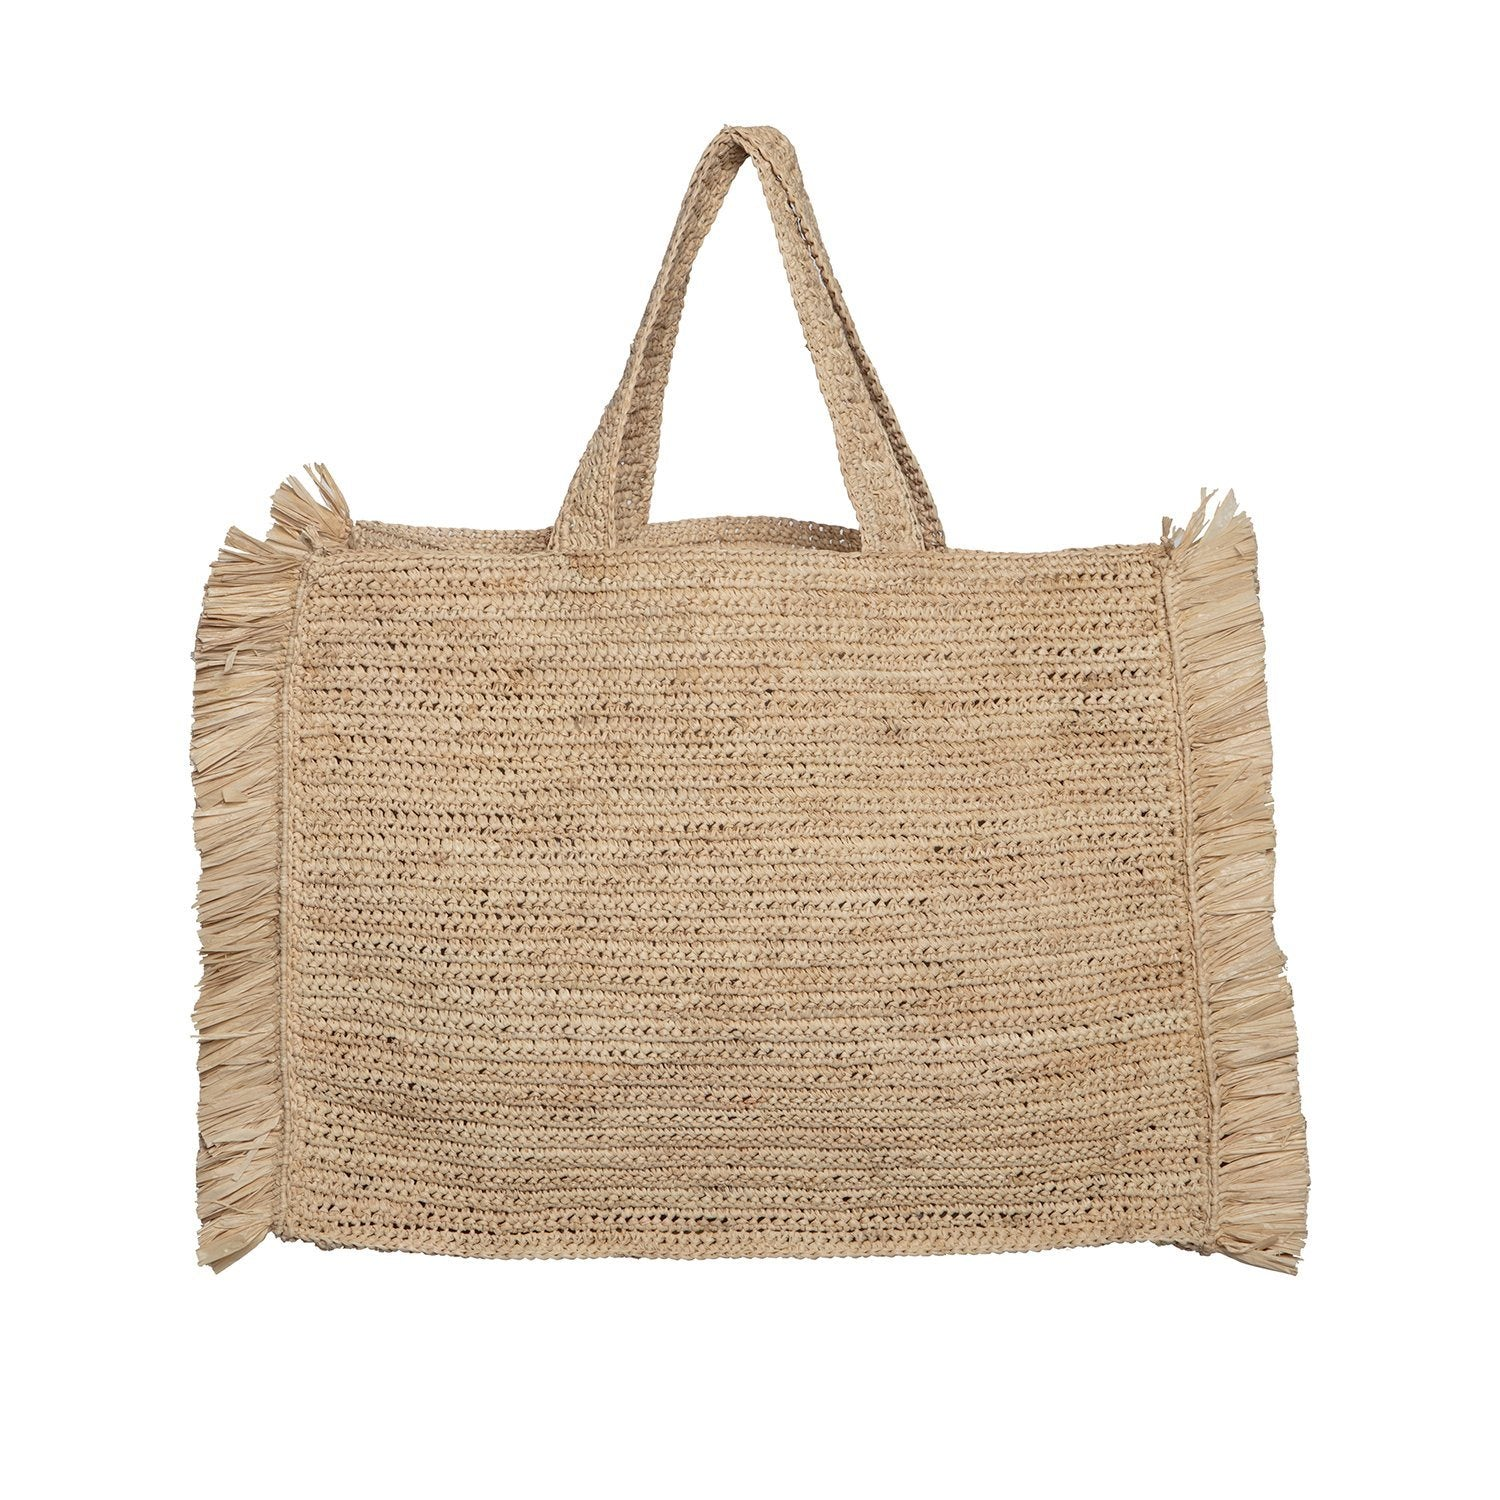 MADE IN MADA June M Bag - Natural bag - Zabecca Living